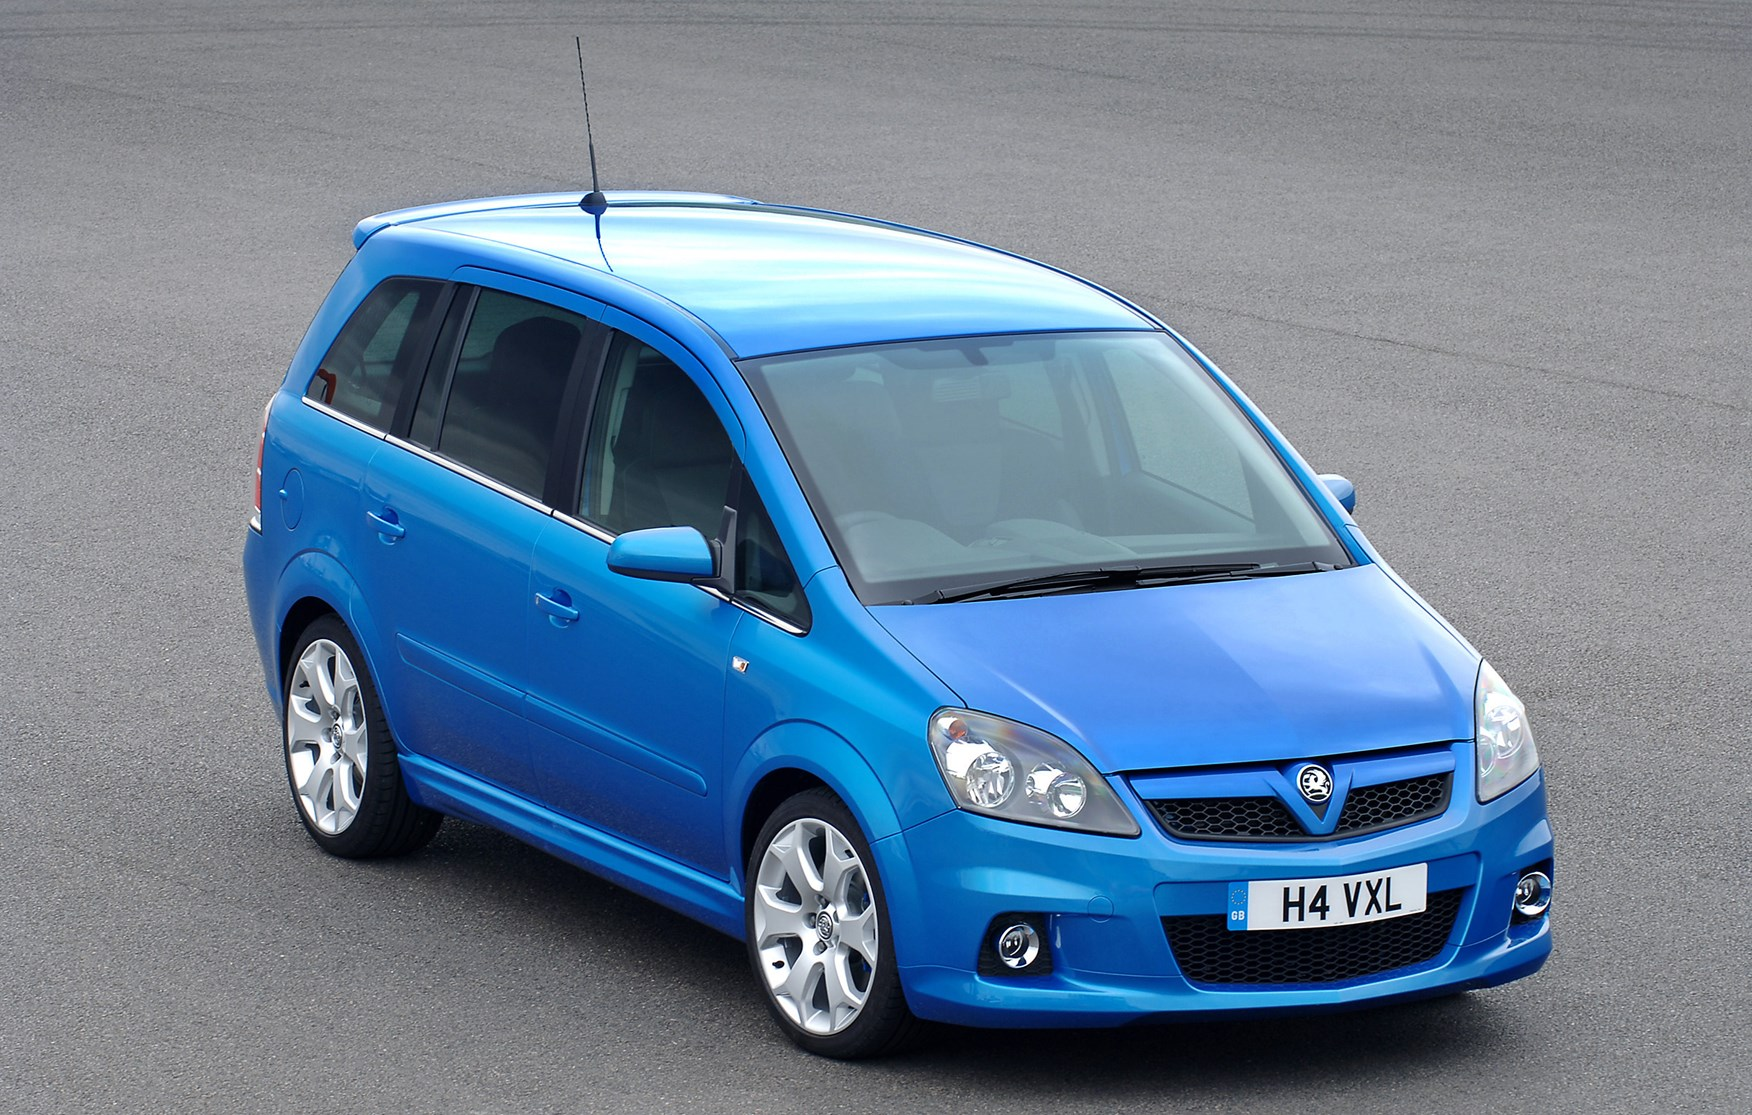 vauxhall zafira vxr review 2005 2010 parkers. Black Bedroom Furniture Sets. Home Design Ideas